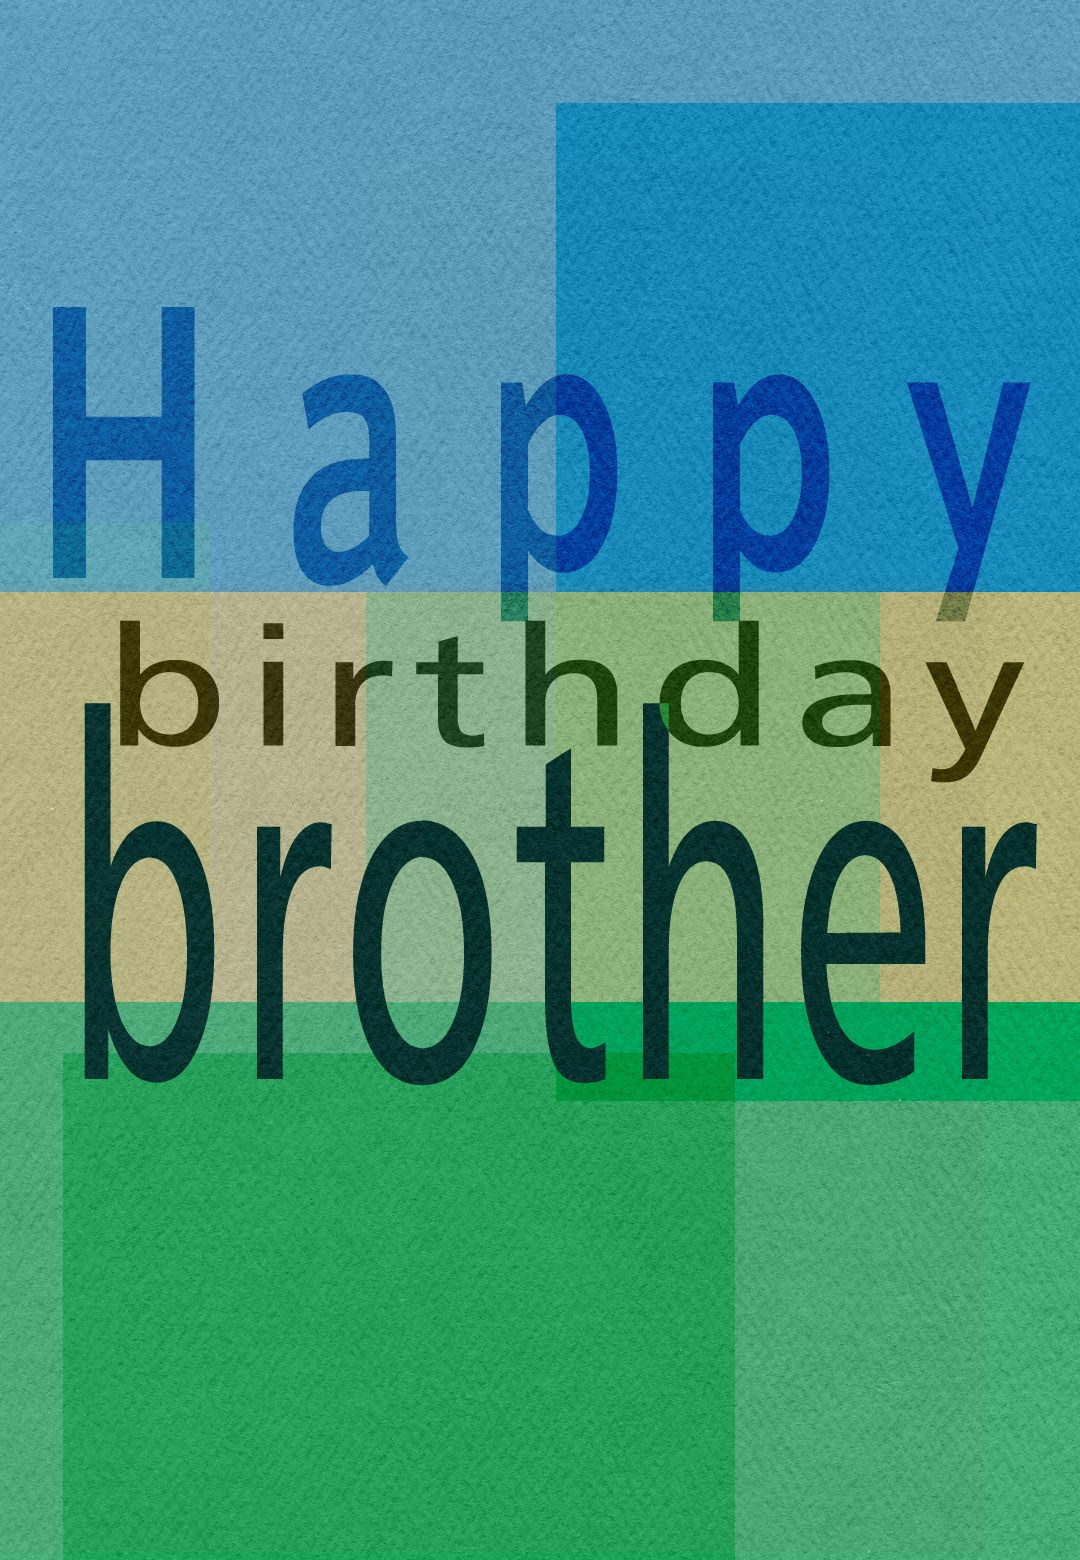 free printable greeting cards | gift ideas | pinterest | birthday